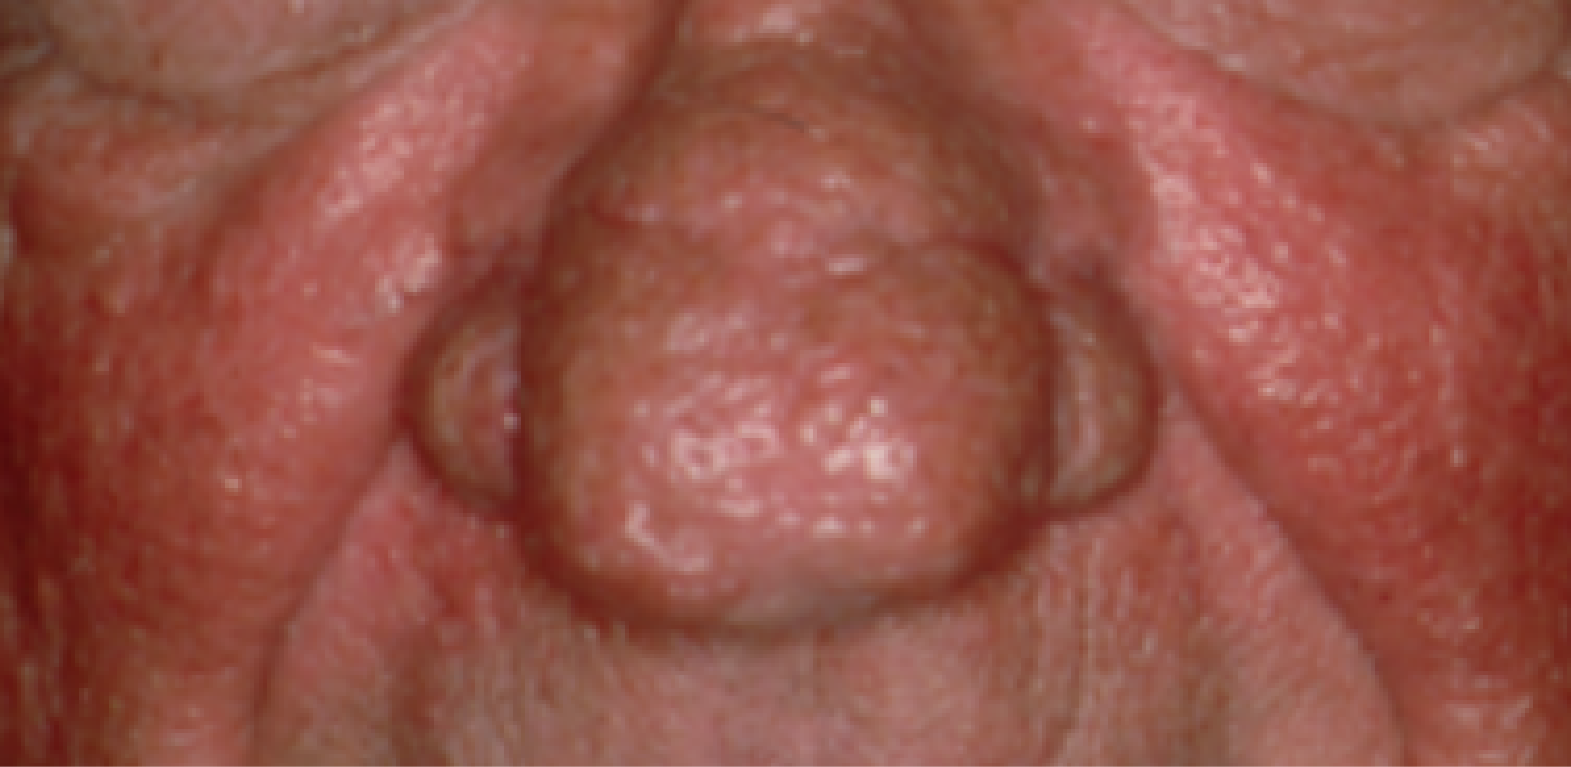 rhinophyma on males nose